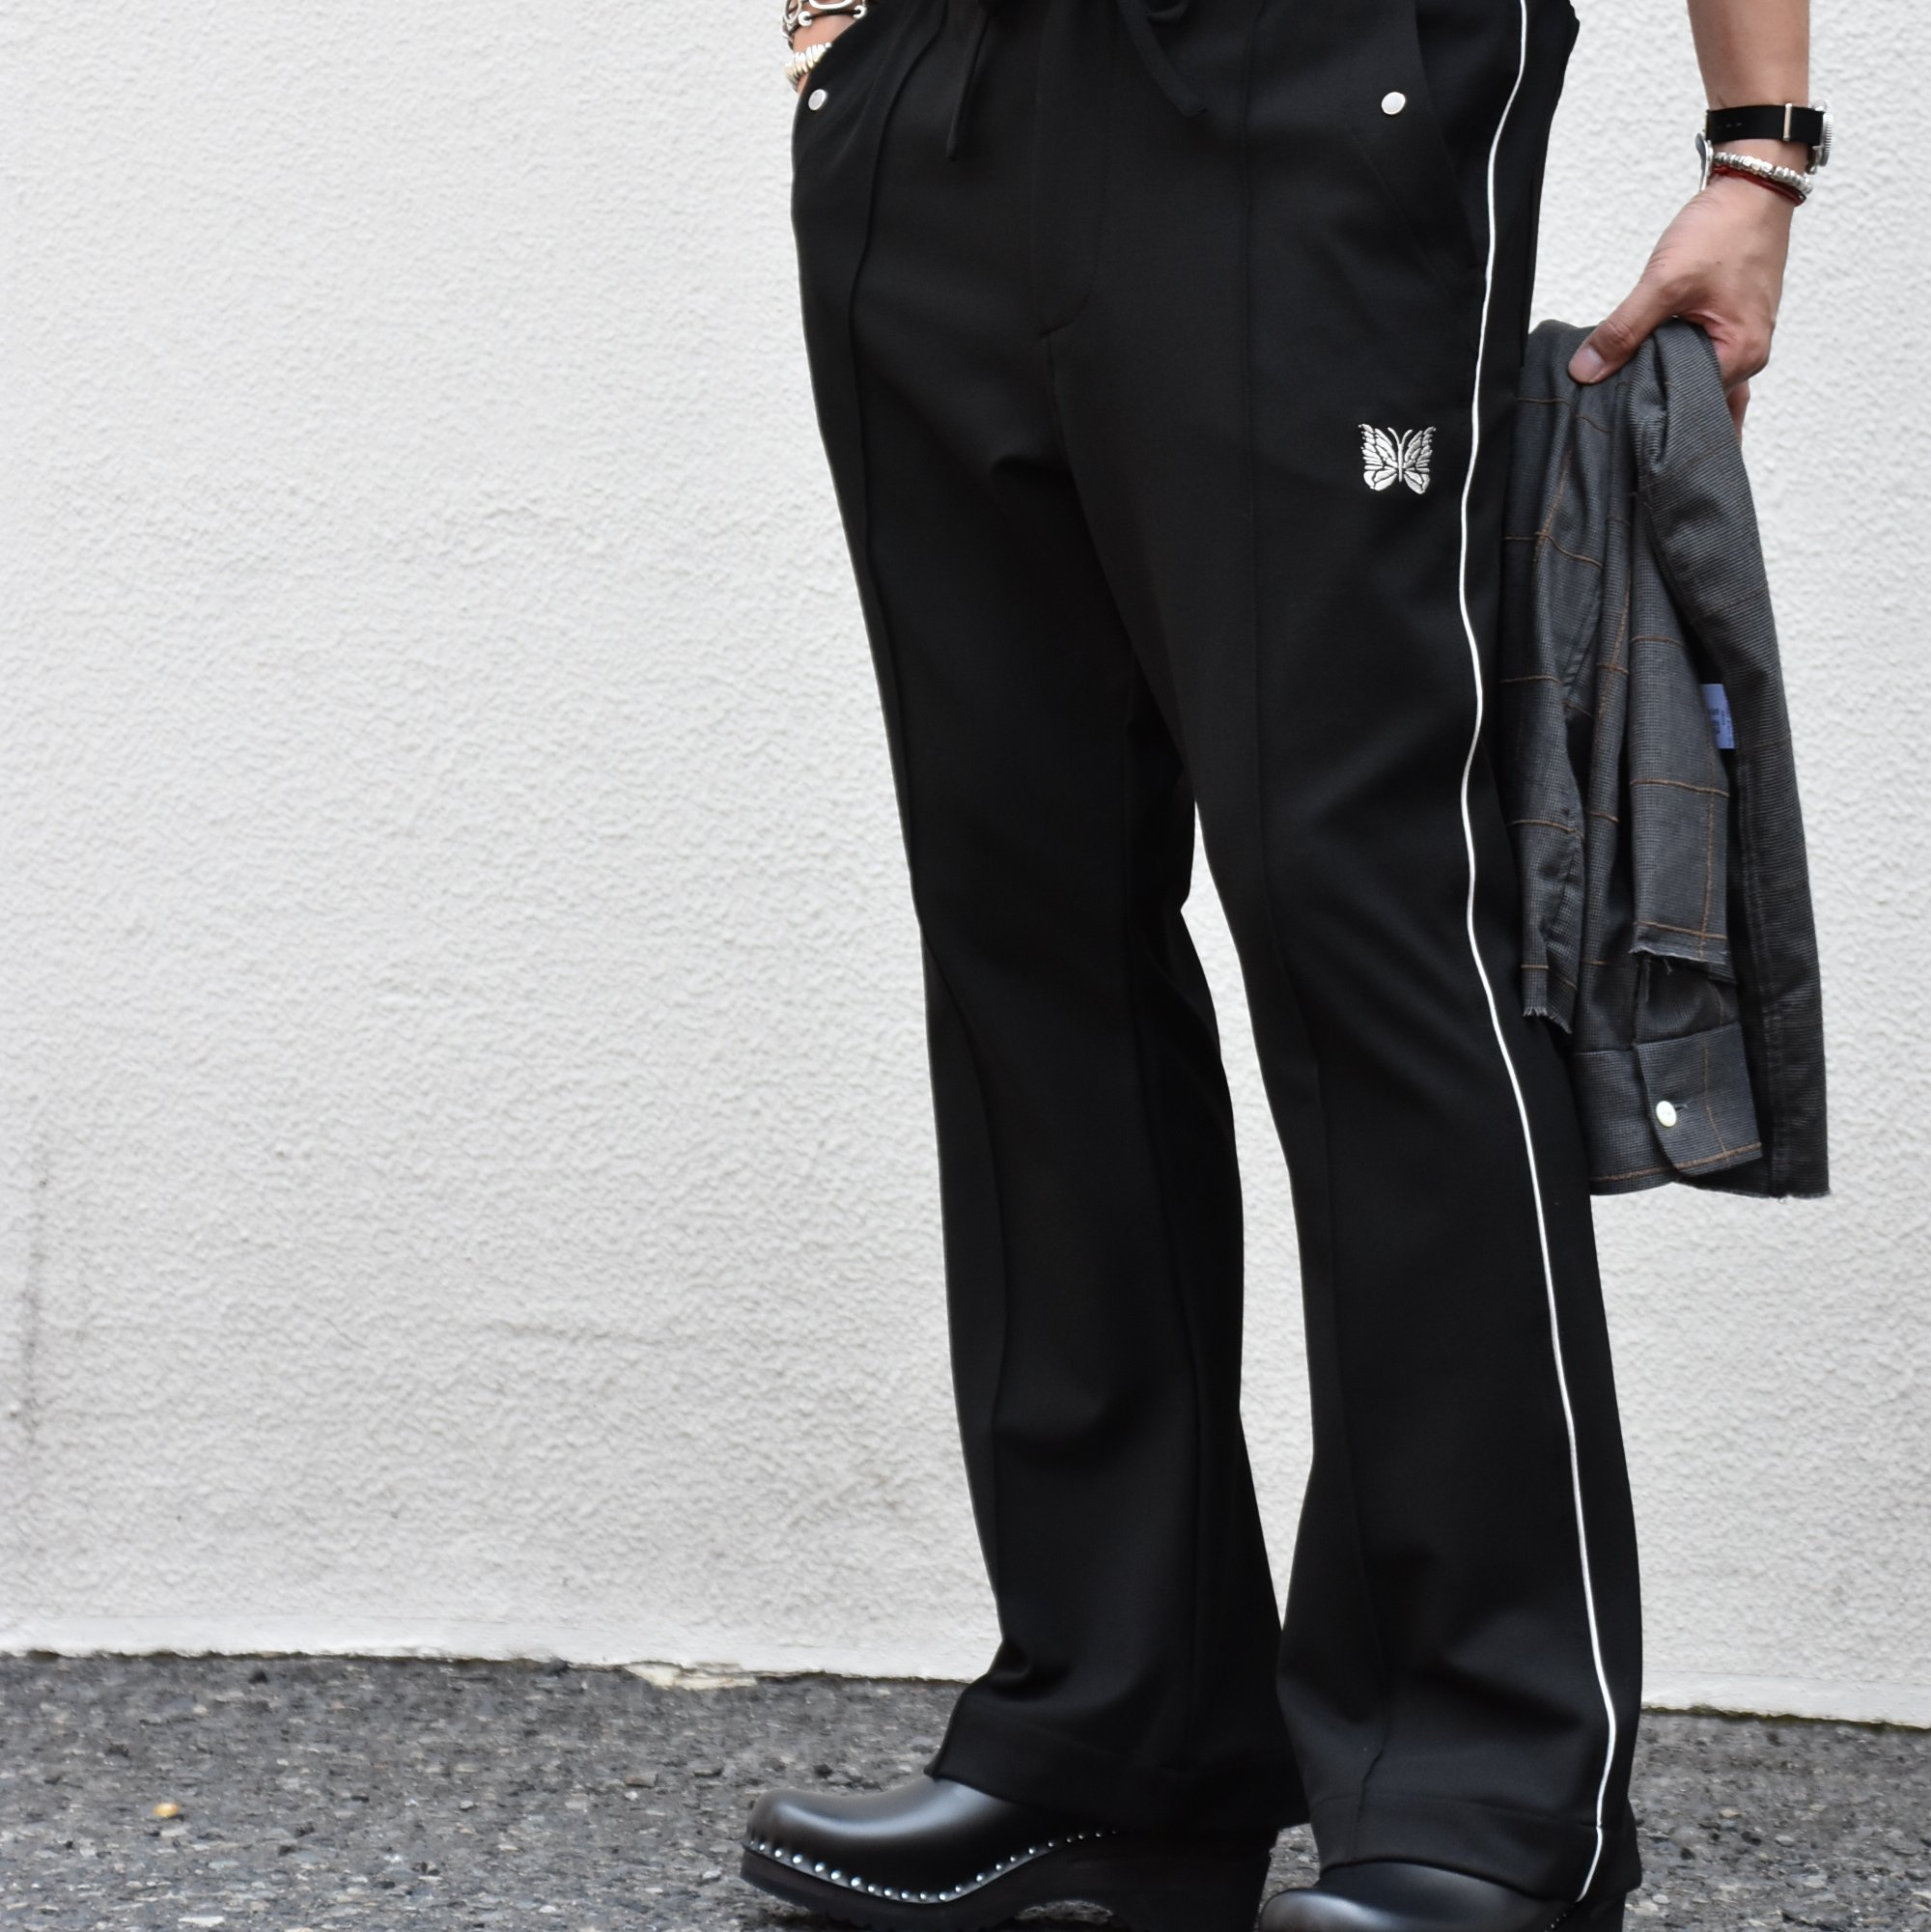 【2020】NEEDLES(ニードルス) Piping cowboy pants -BLACK- #HM-135(1)